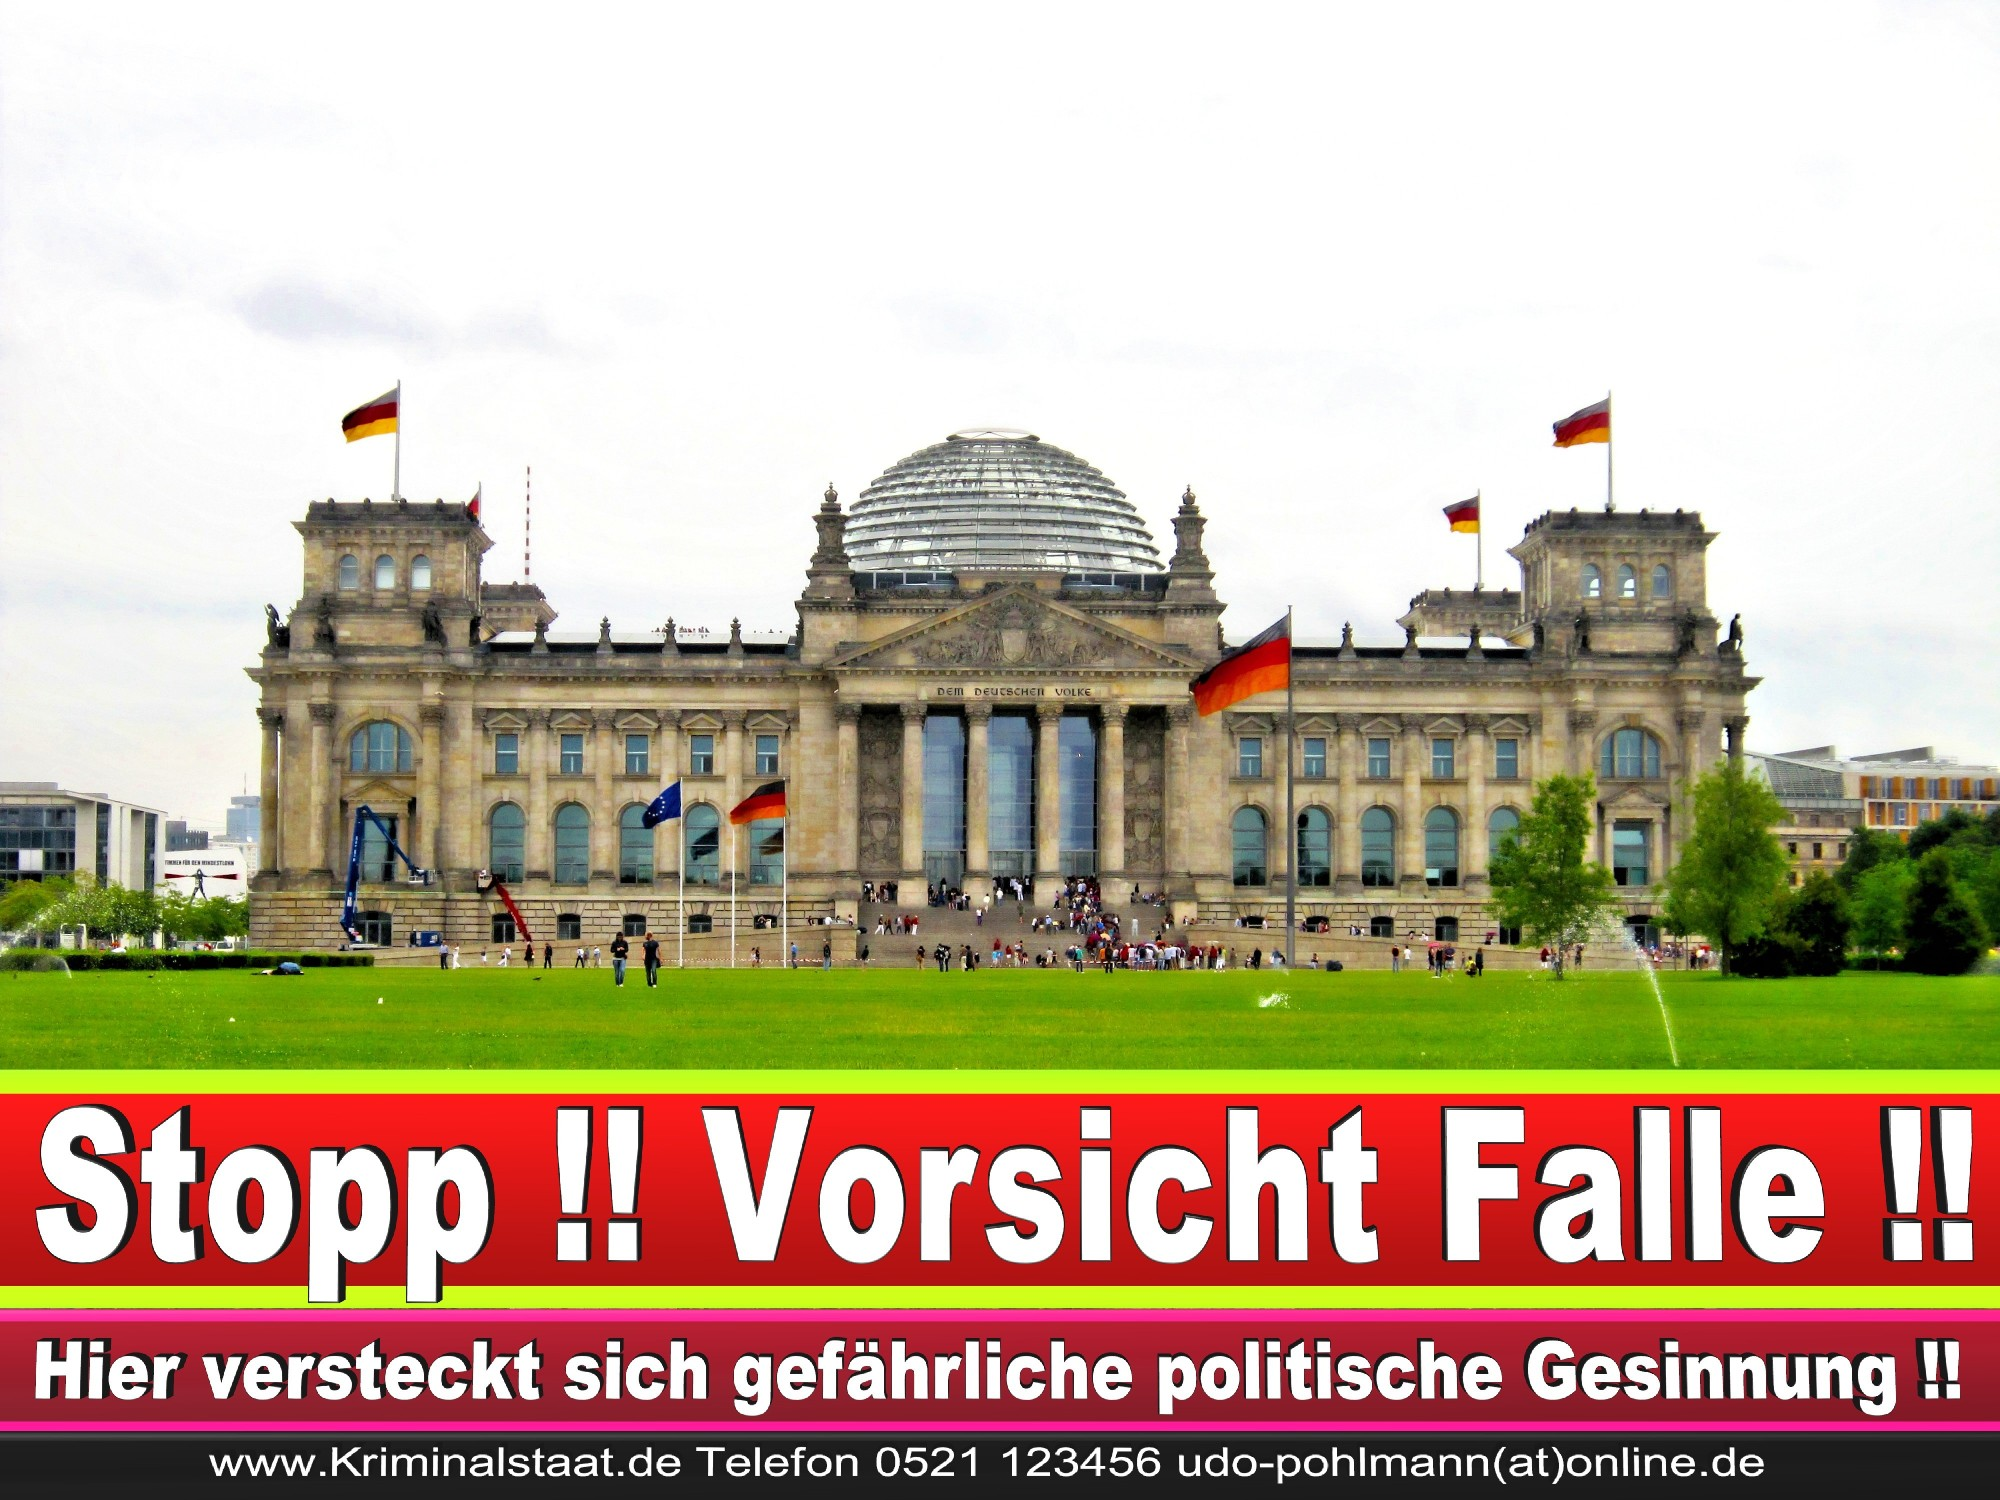 Reichstag Berlin Hd Deutsche Korruption Meldestelle 0521 123456 Edit